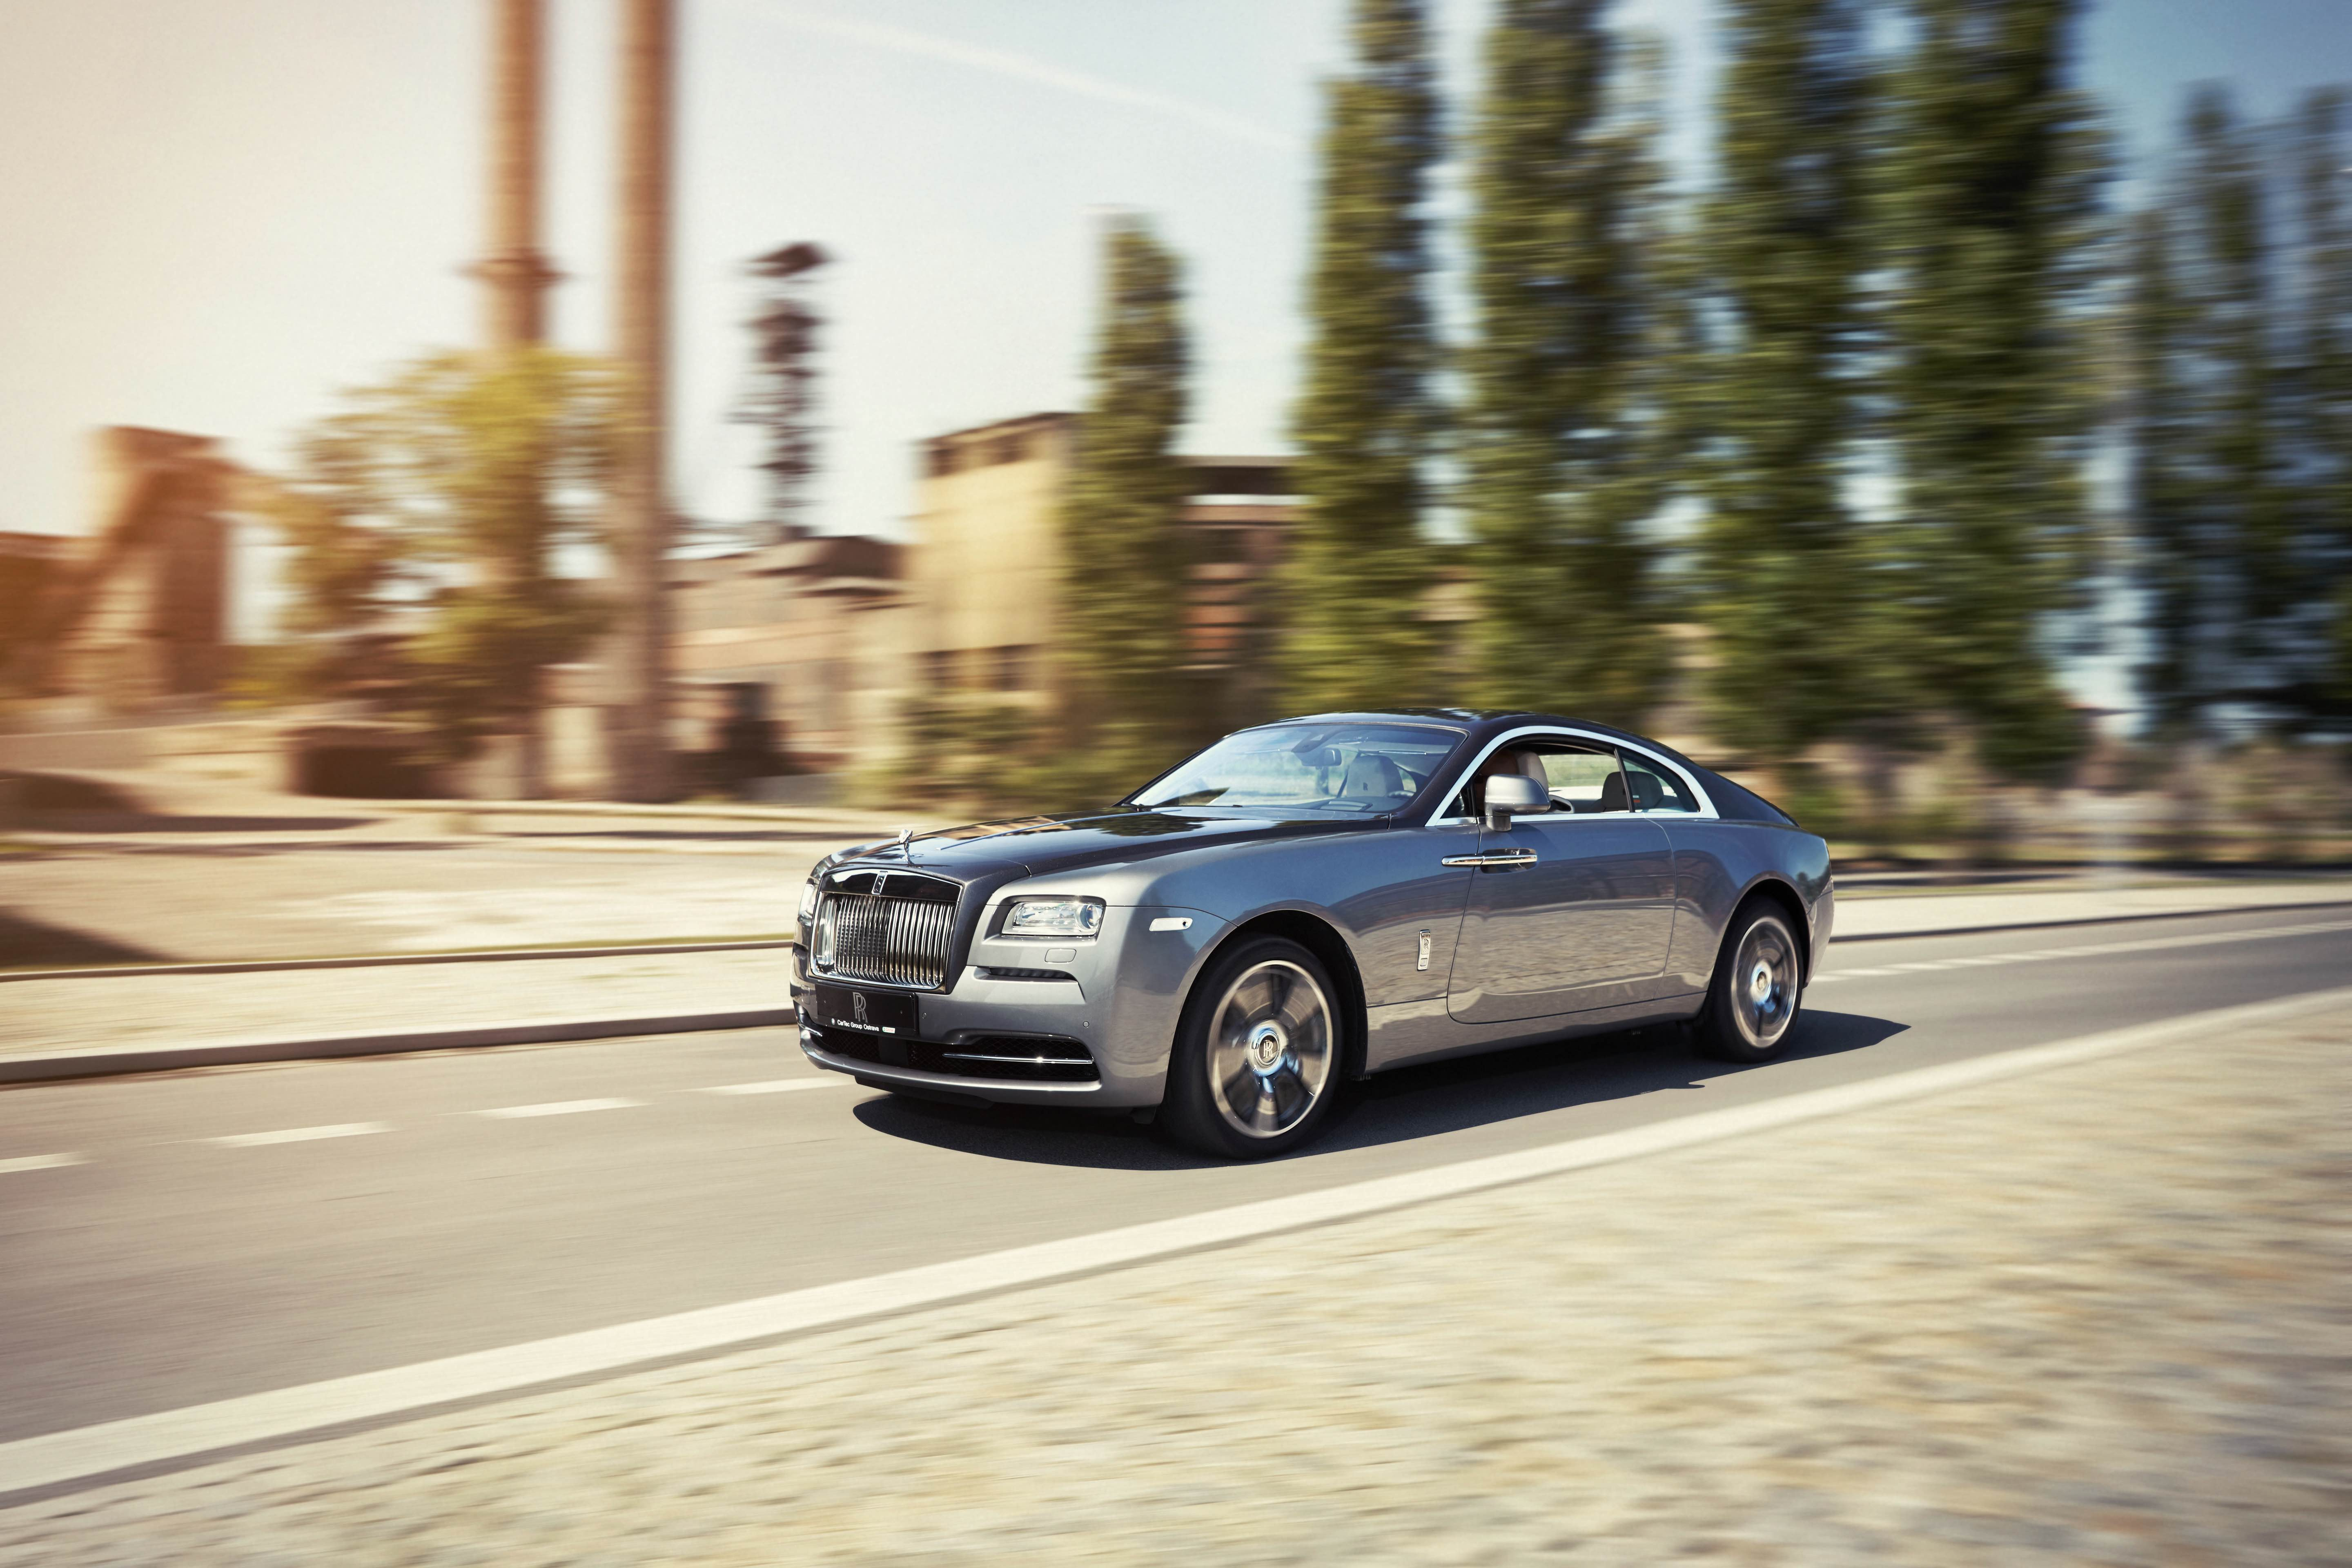 Test driving a Rolls Royce Wraith